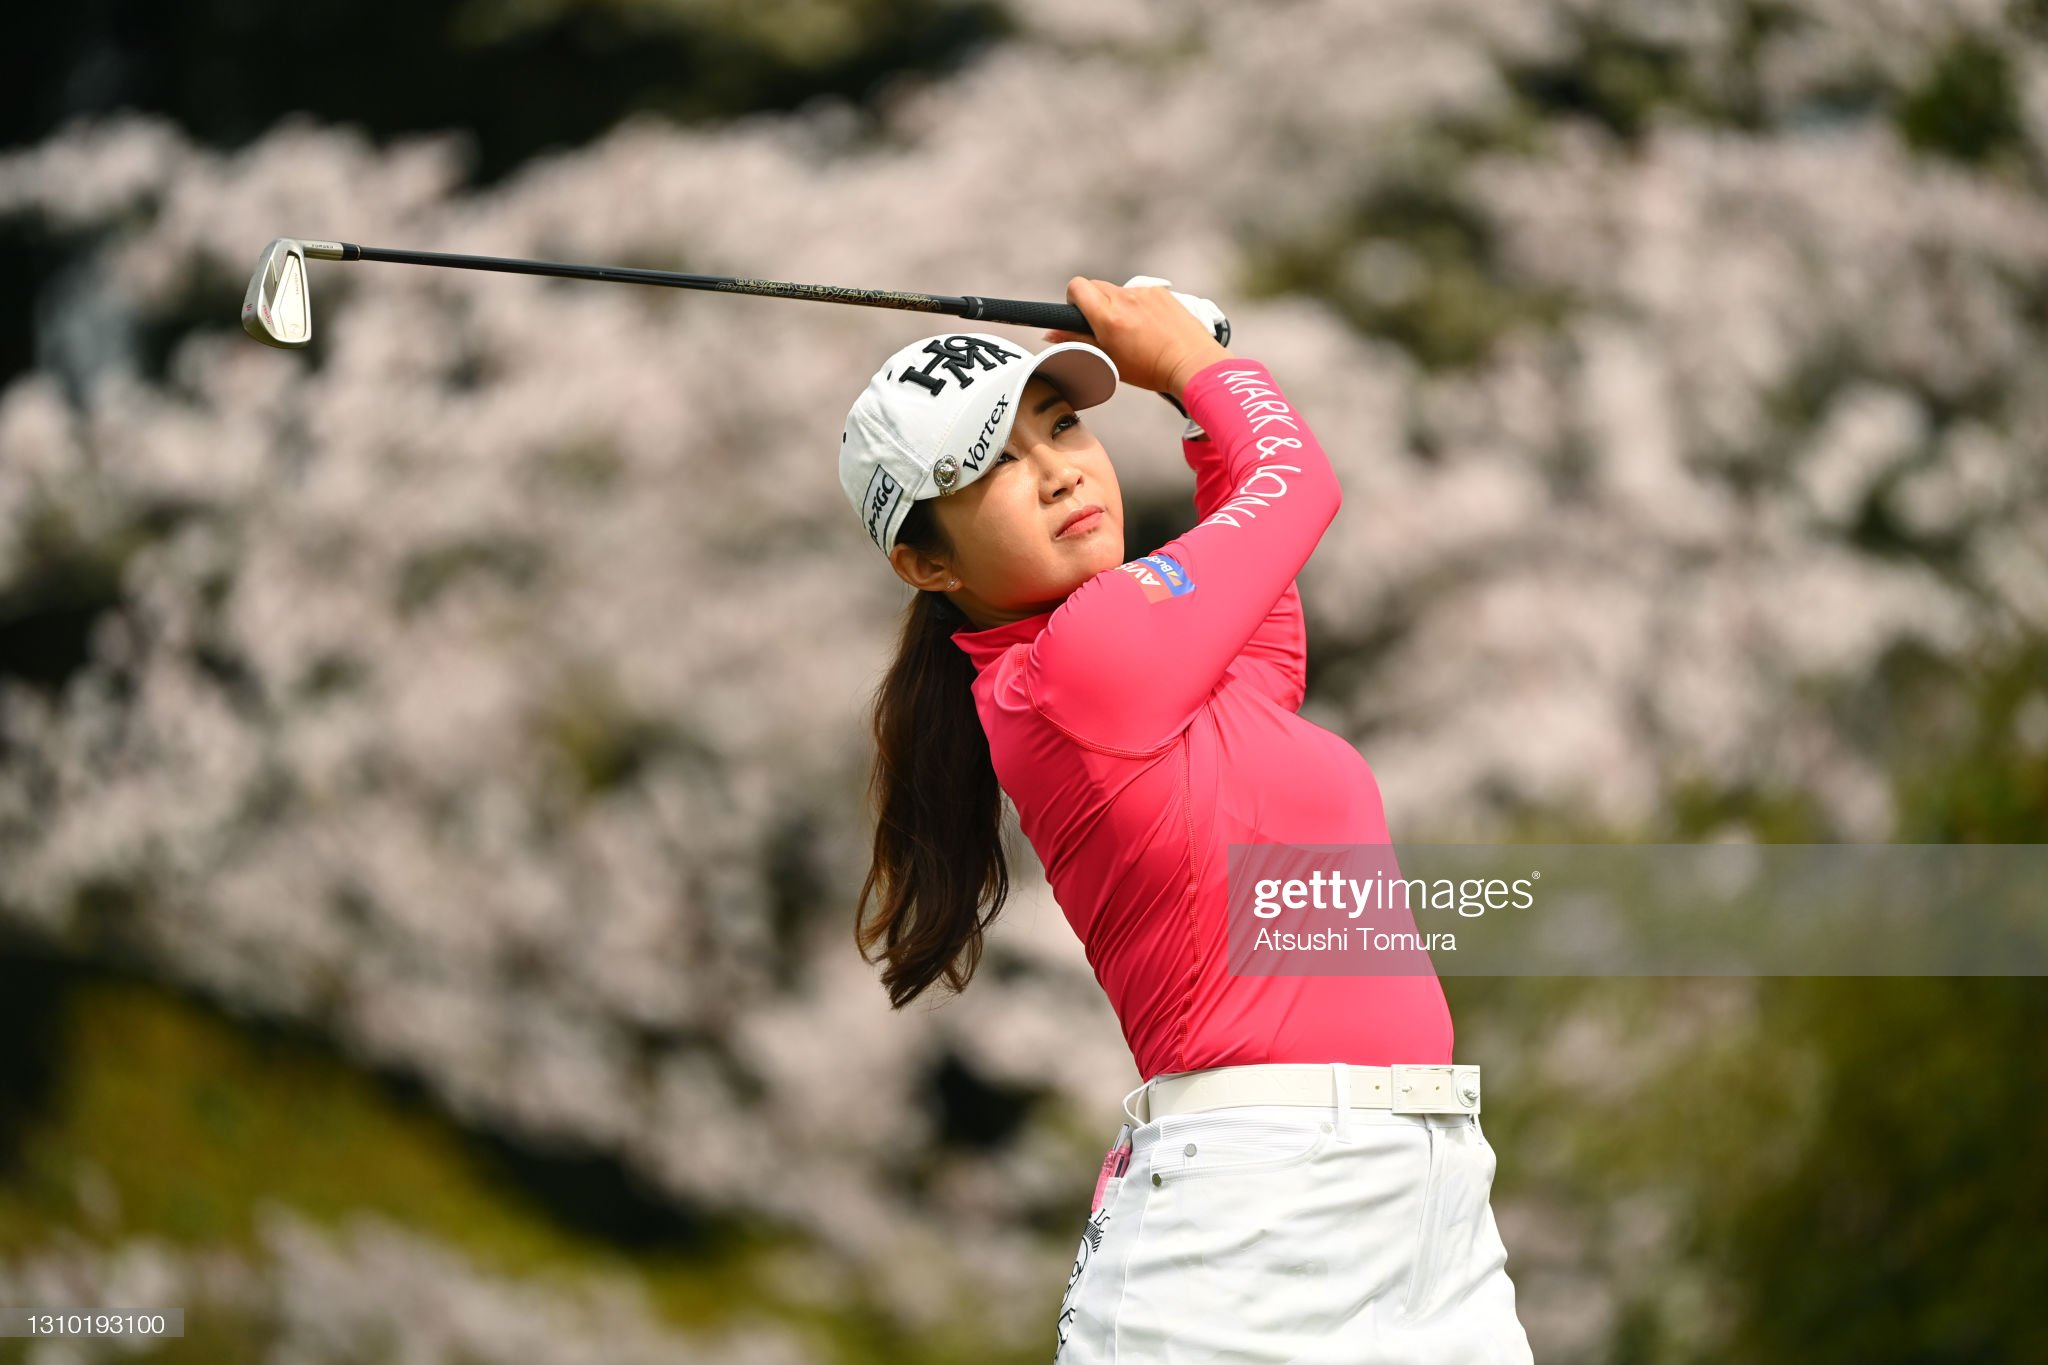 https://media.gettyimages.com/photos/bomee-lee-of-south-korea-hits-her-tee-shot-on-the-17th-hole-during-picture-id1310193100?s=2048x2048